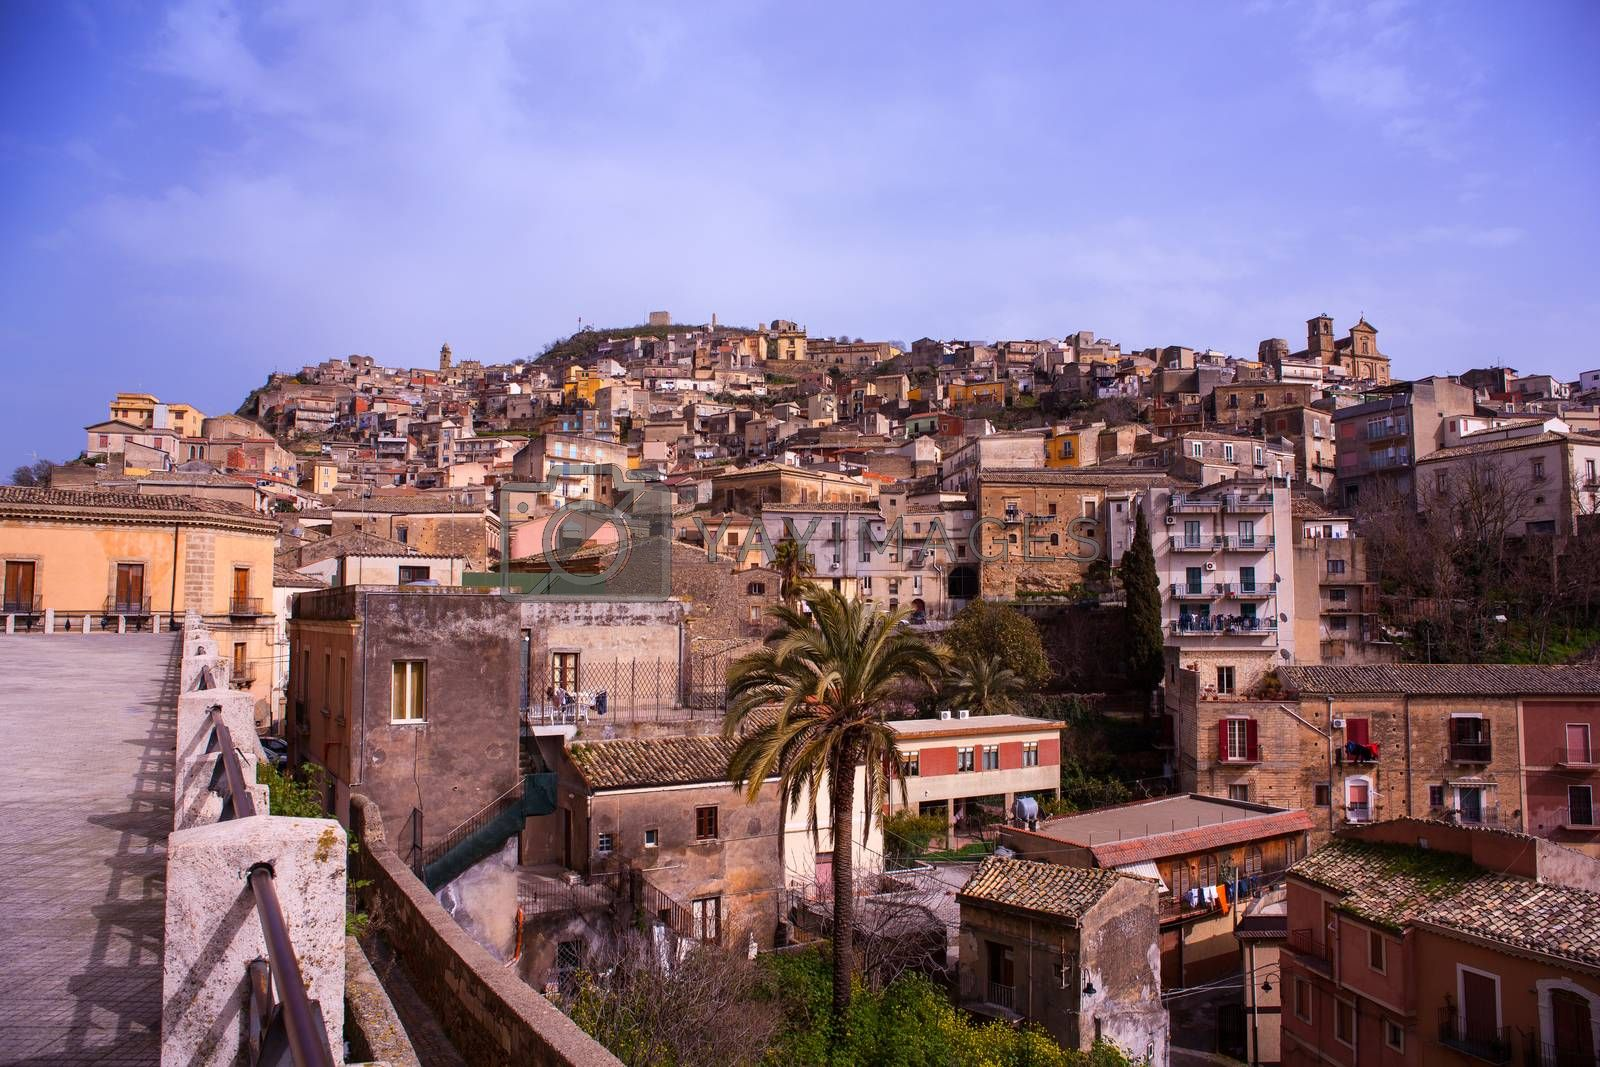 View of Agira, Sicily by bepsimage